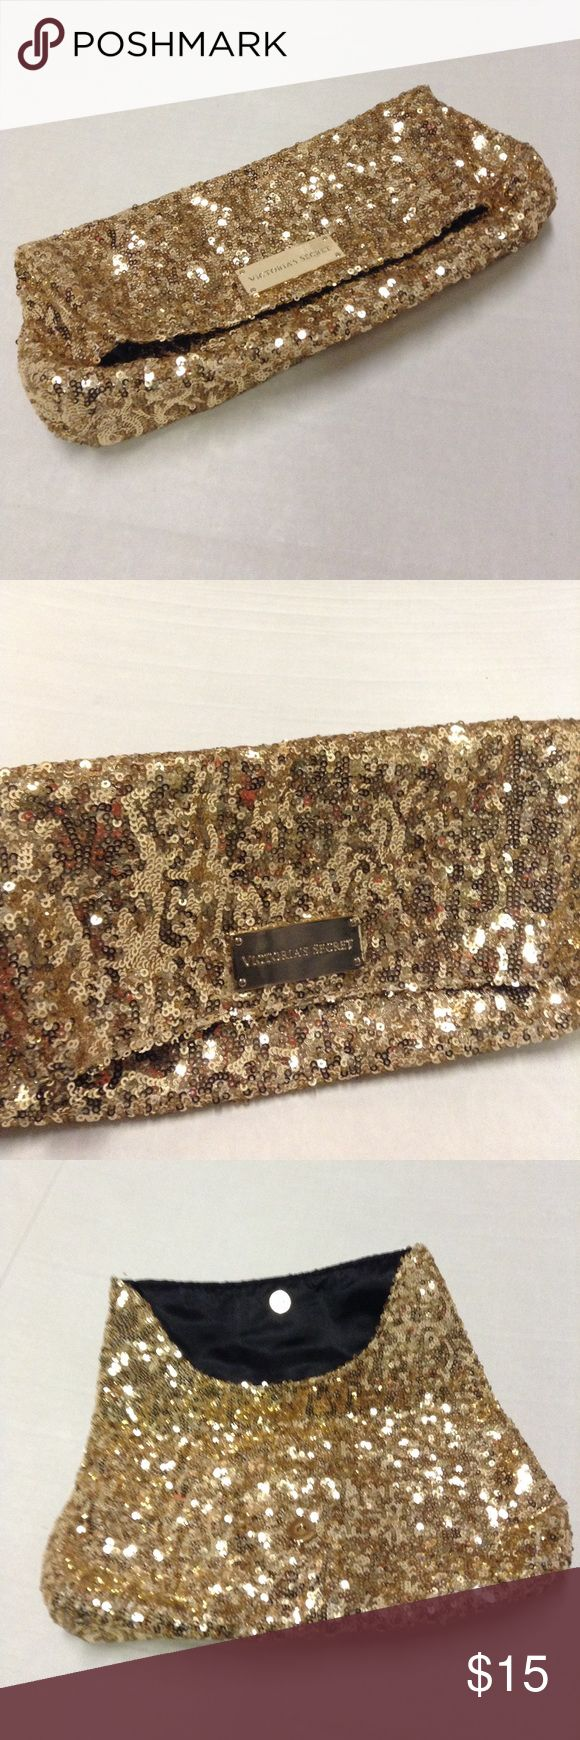 "Victoria Secret Gold Sequin Clutch Nice Victoria Secret Gold Sequin Clutch. In good condition. 11""W X 5.5""L closed. 9""L opened Victoria's Secret Bags Clutches & Wristlets"